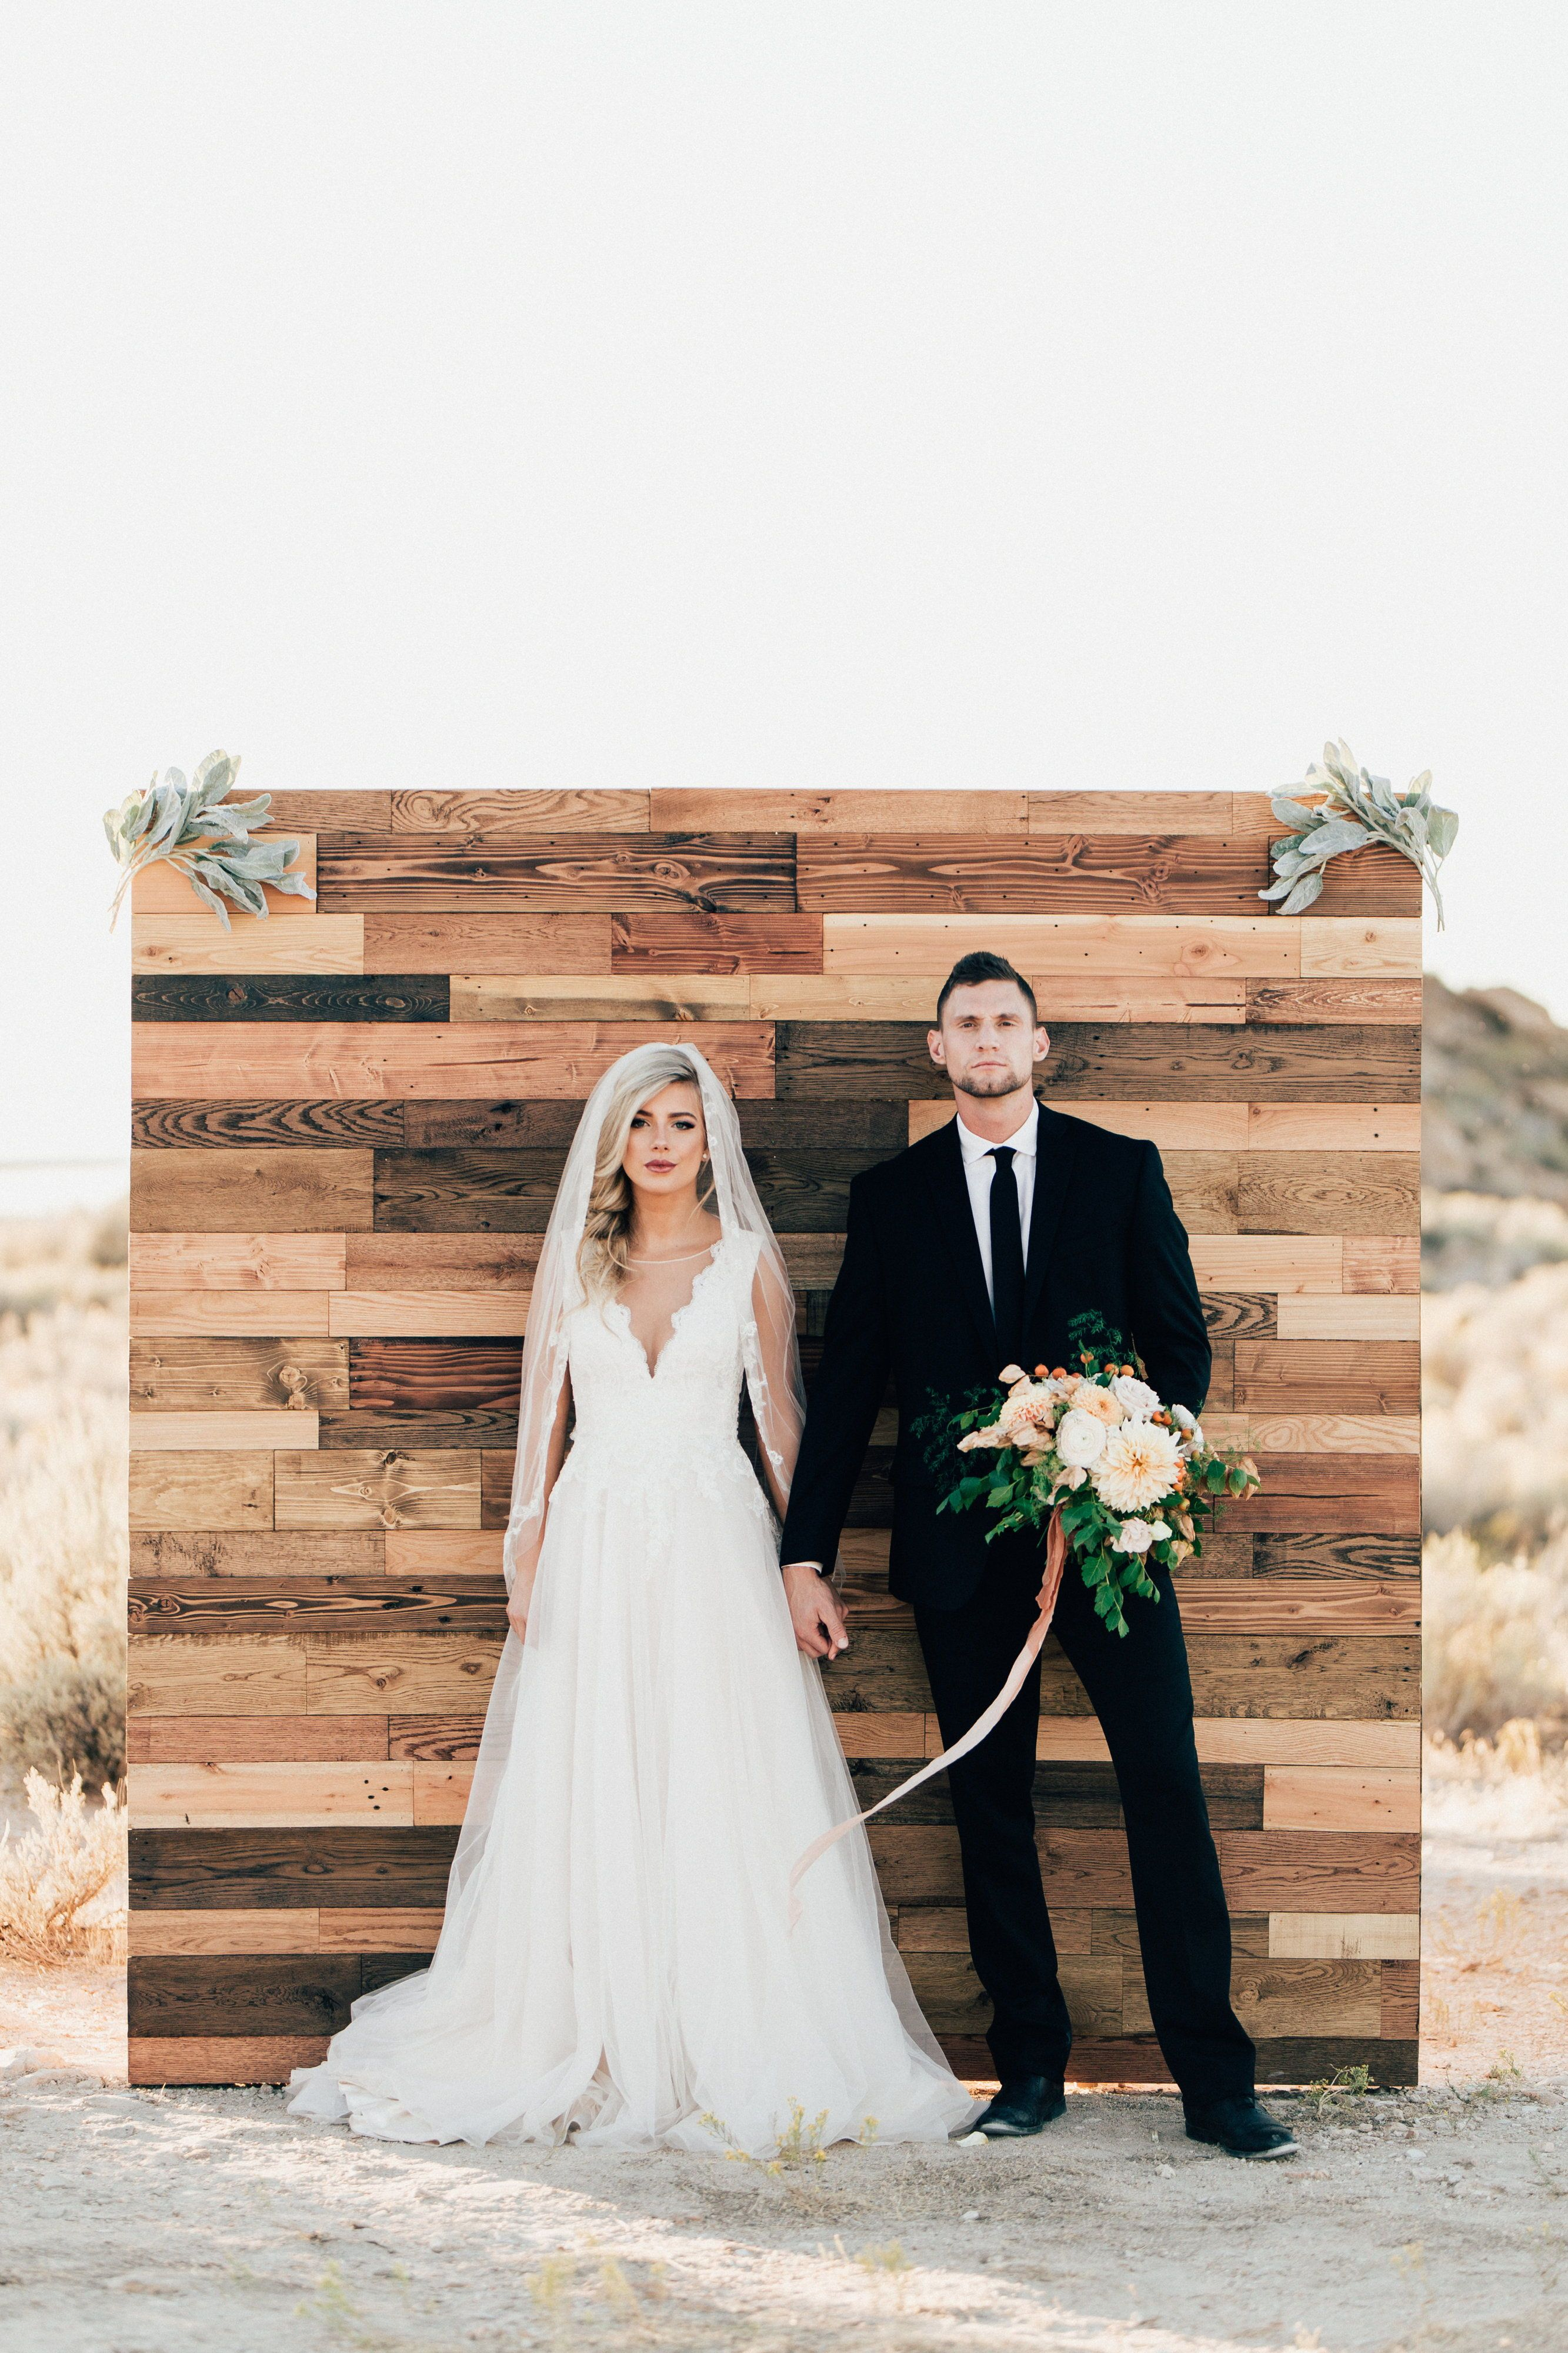 Modern And Charming Wooden Backdrop Looking For Your Dream Wedding Dress In Utah Set Up An Appointme Wedding Dresses Dream Wedding Dresses Beautiful Bride